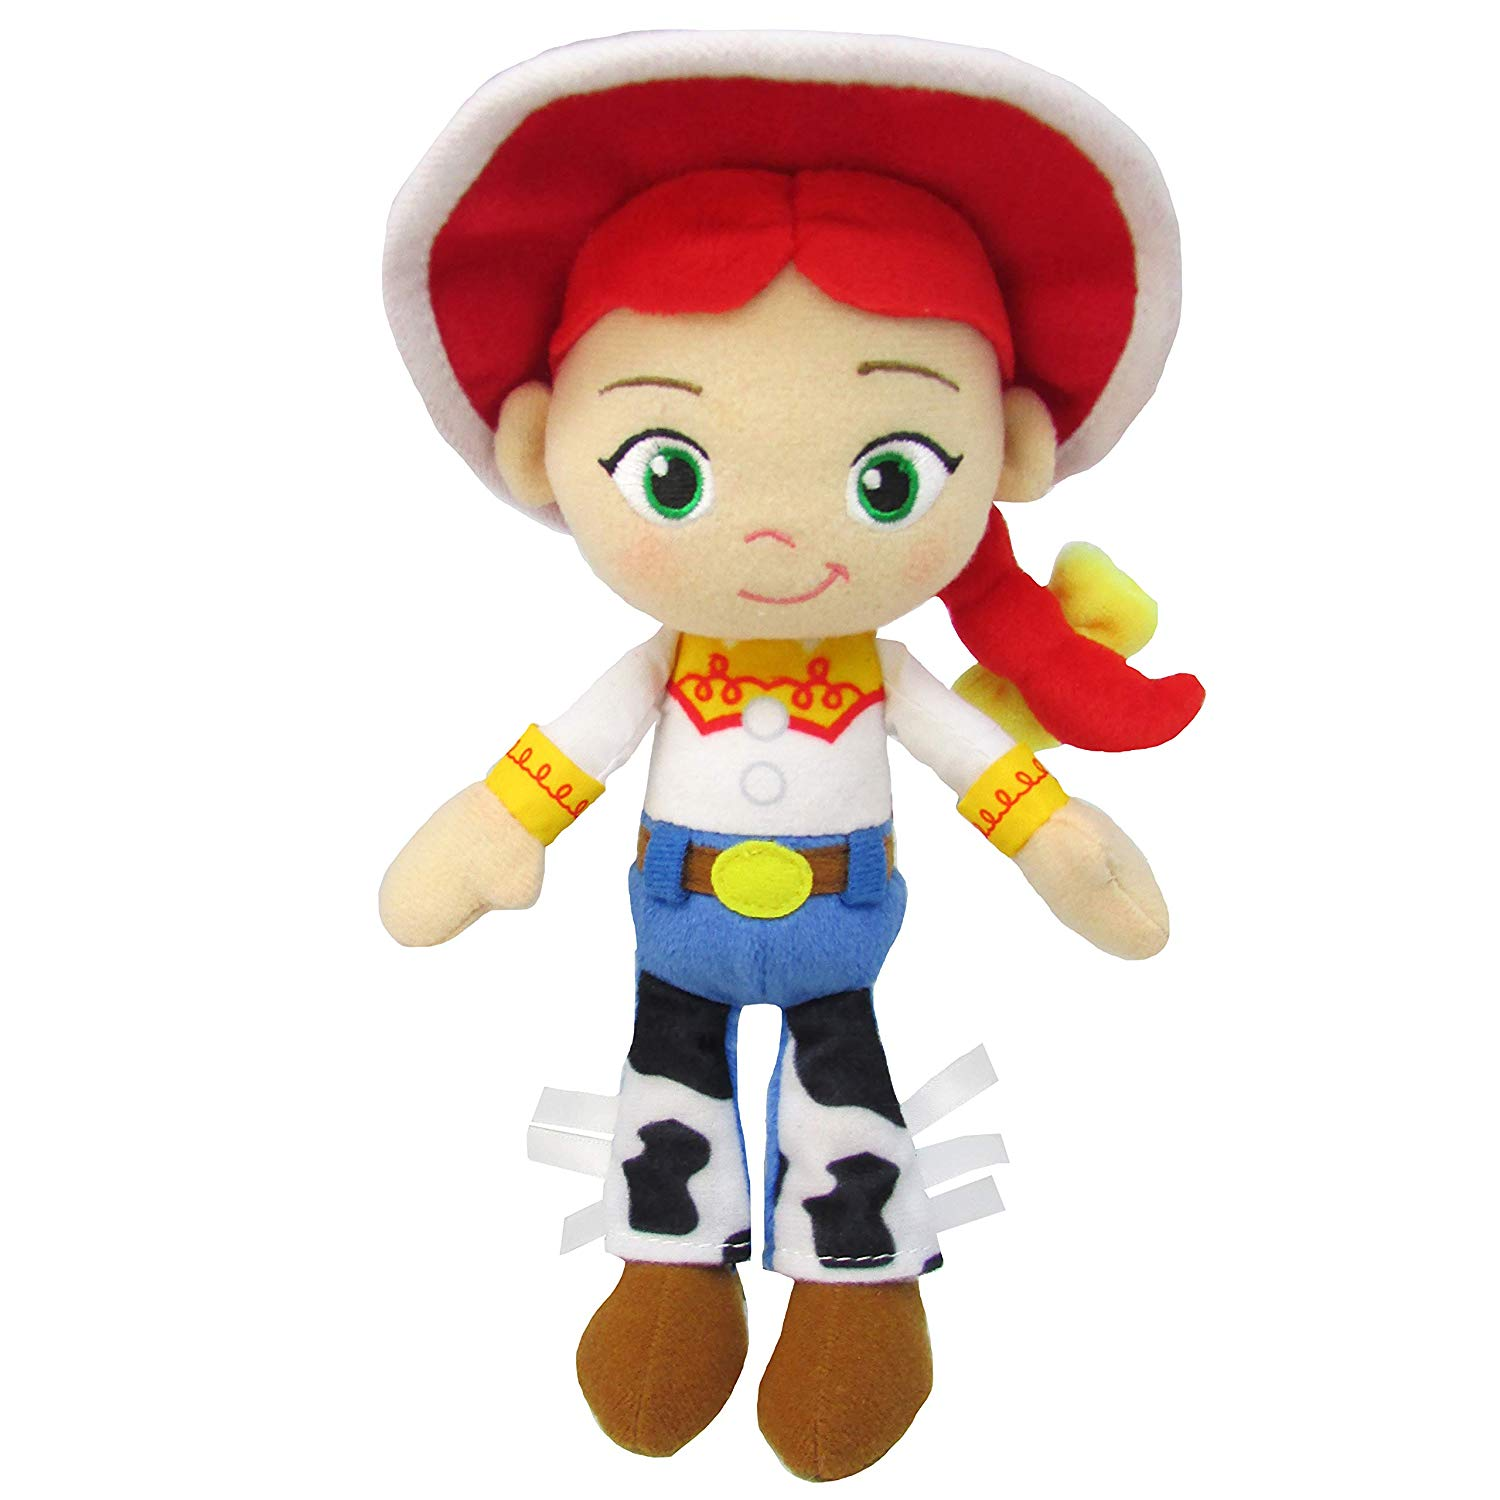 Toy Story Disney Baby Small Plush Jessie Doll